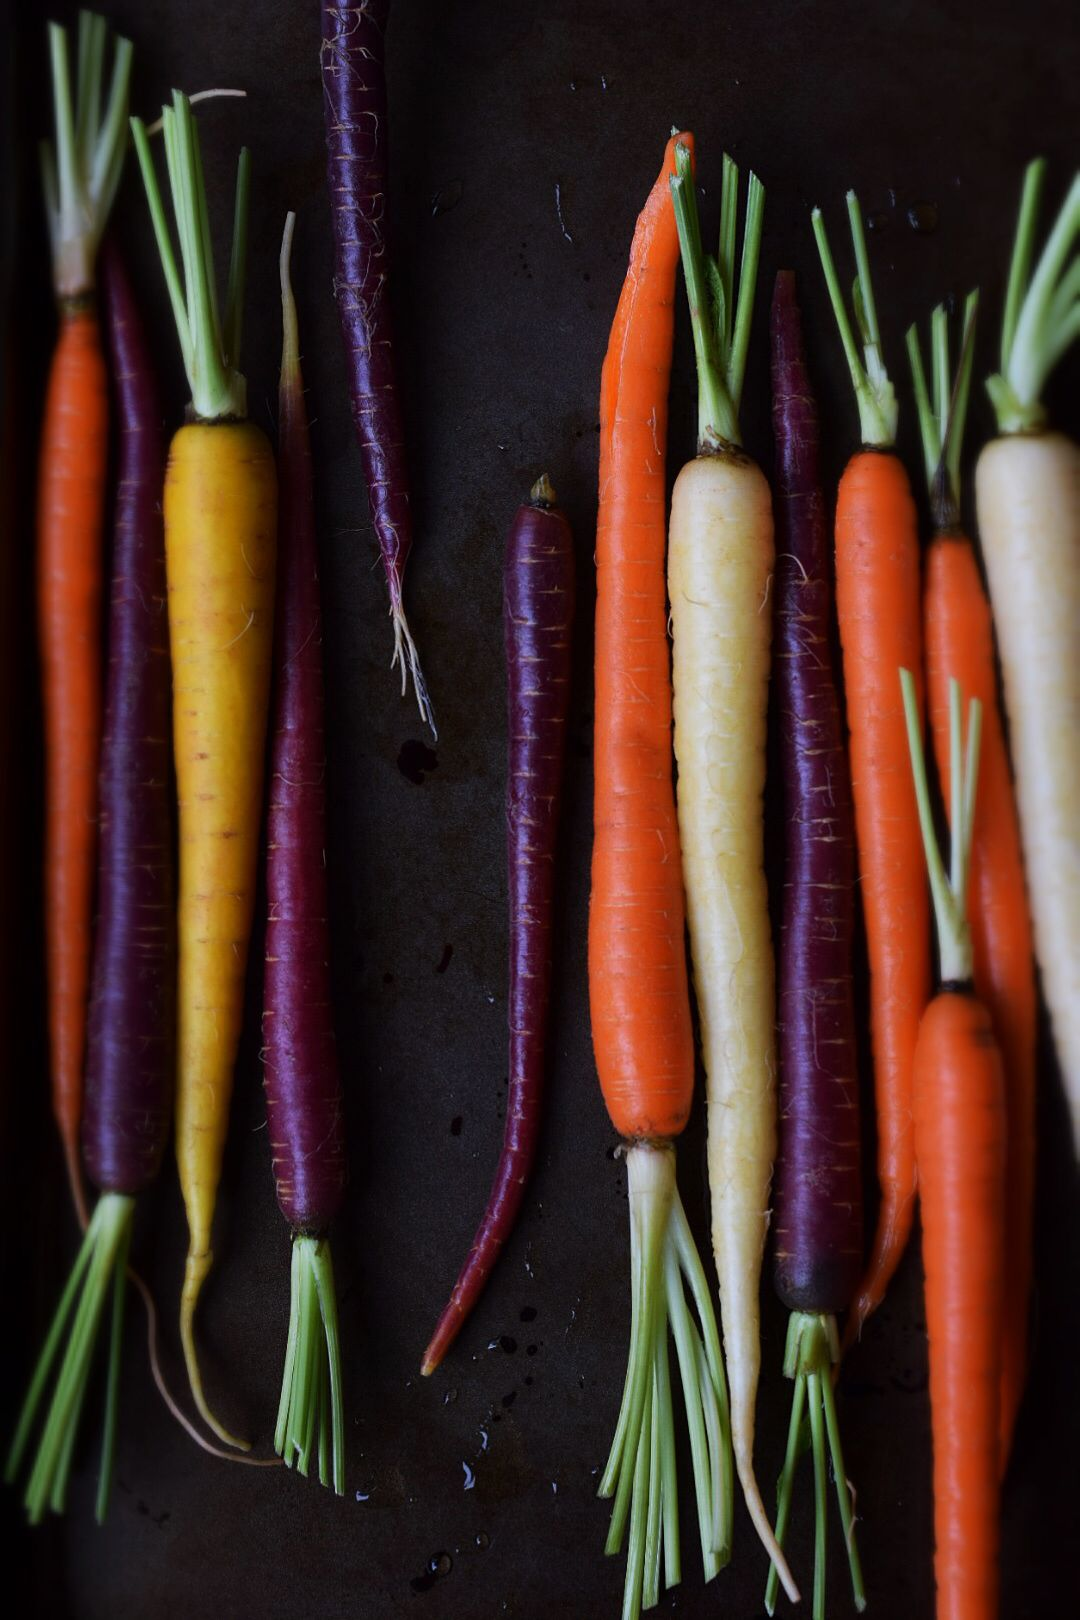 Rainbow Carrots Foodphotography Food Photography Food And Drink Carrots